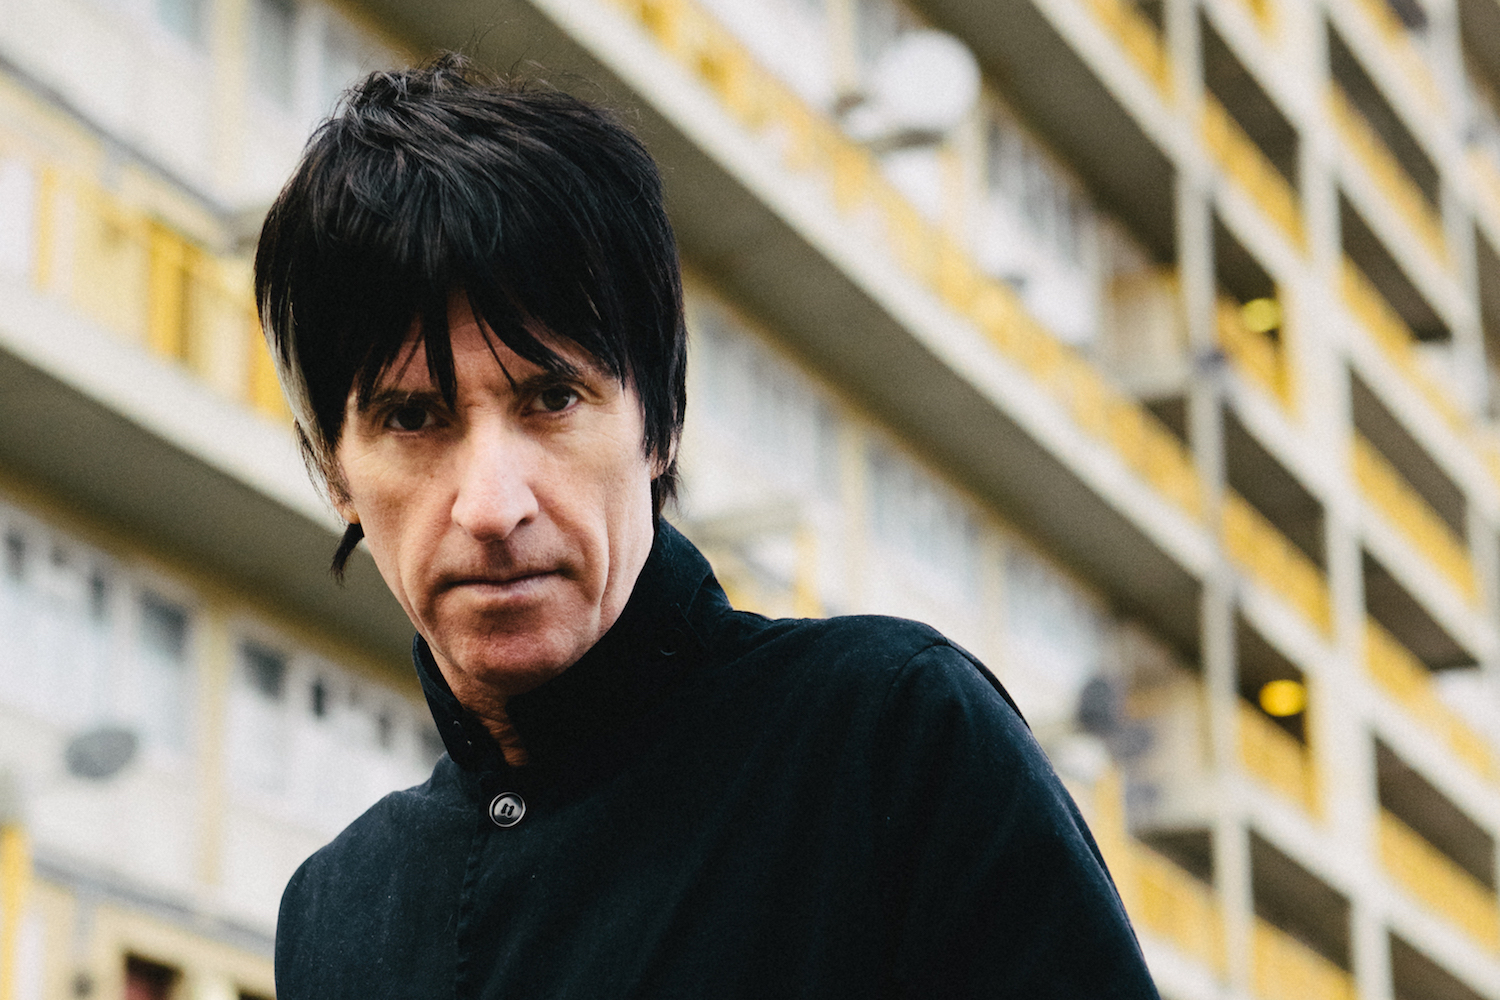 Johnny Marr's new single 'The Bright Parade' is all about the guitar